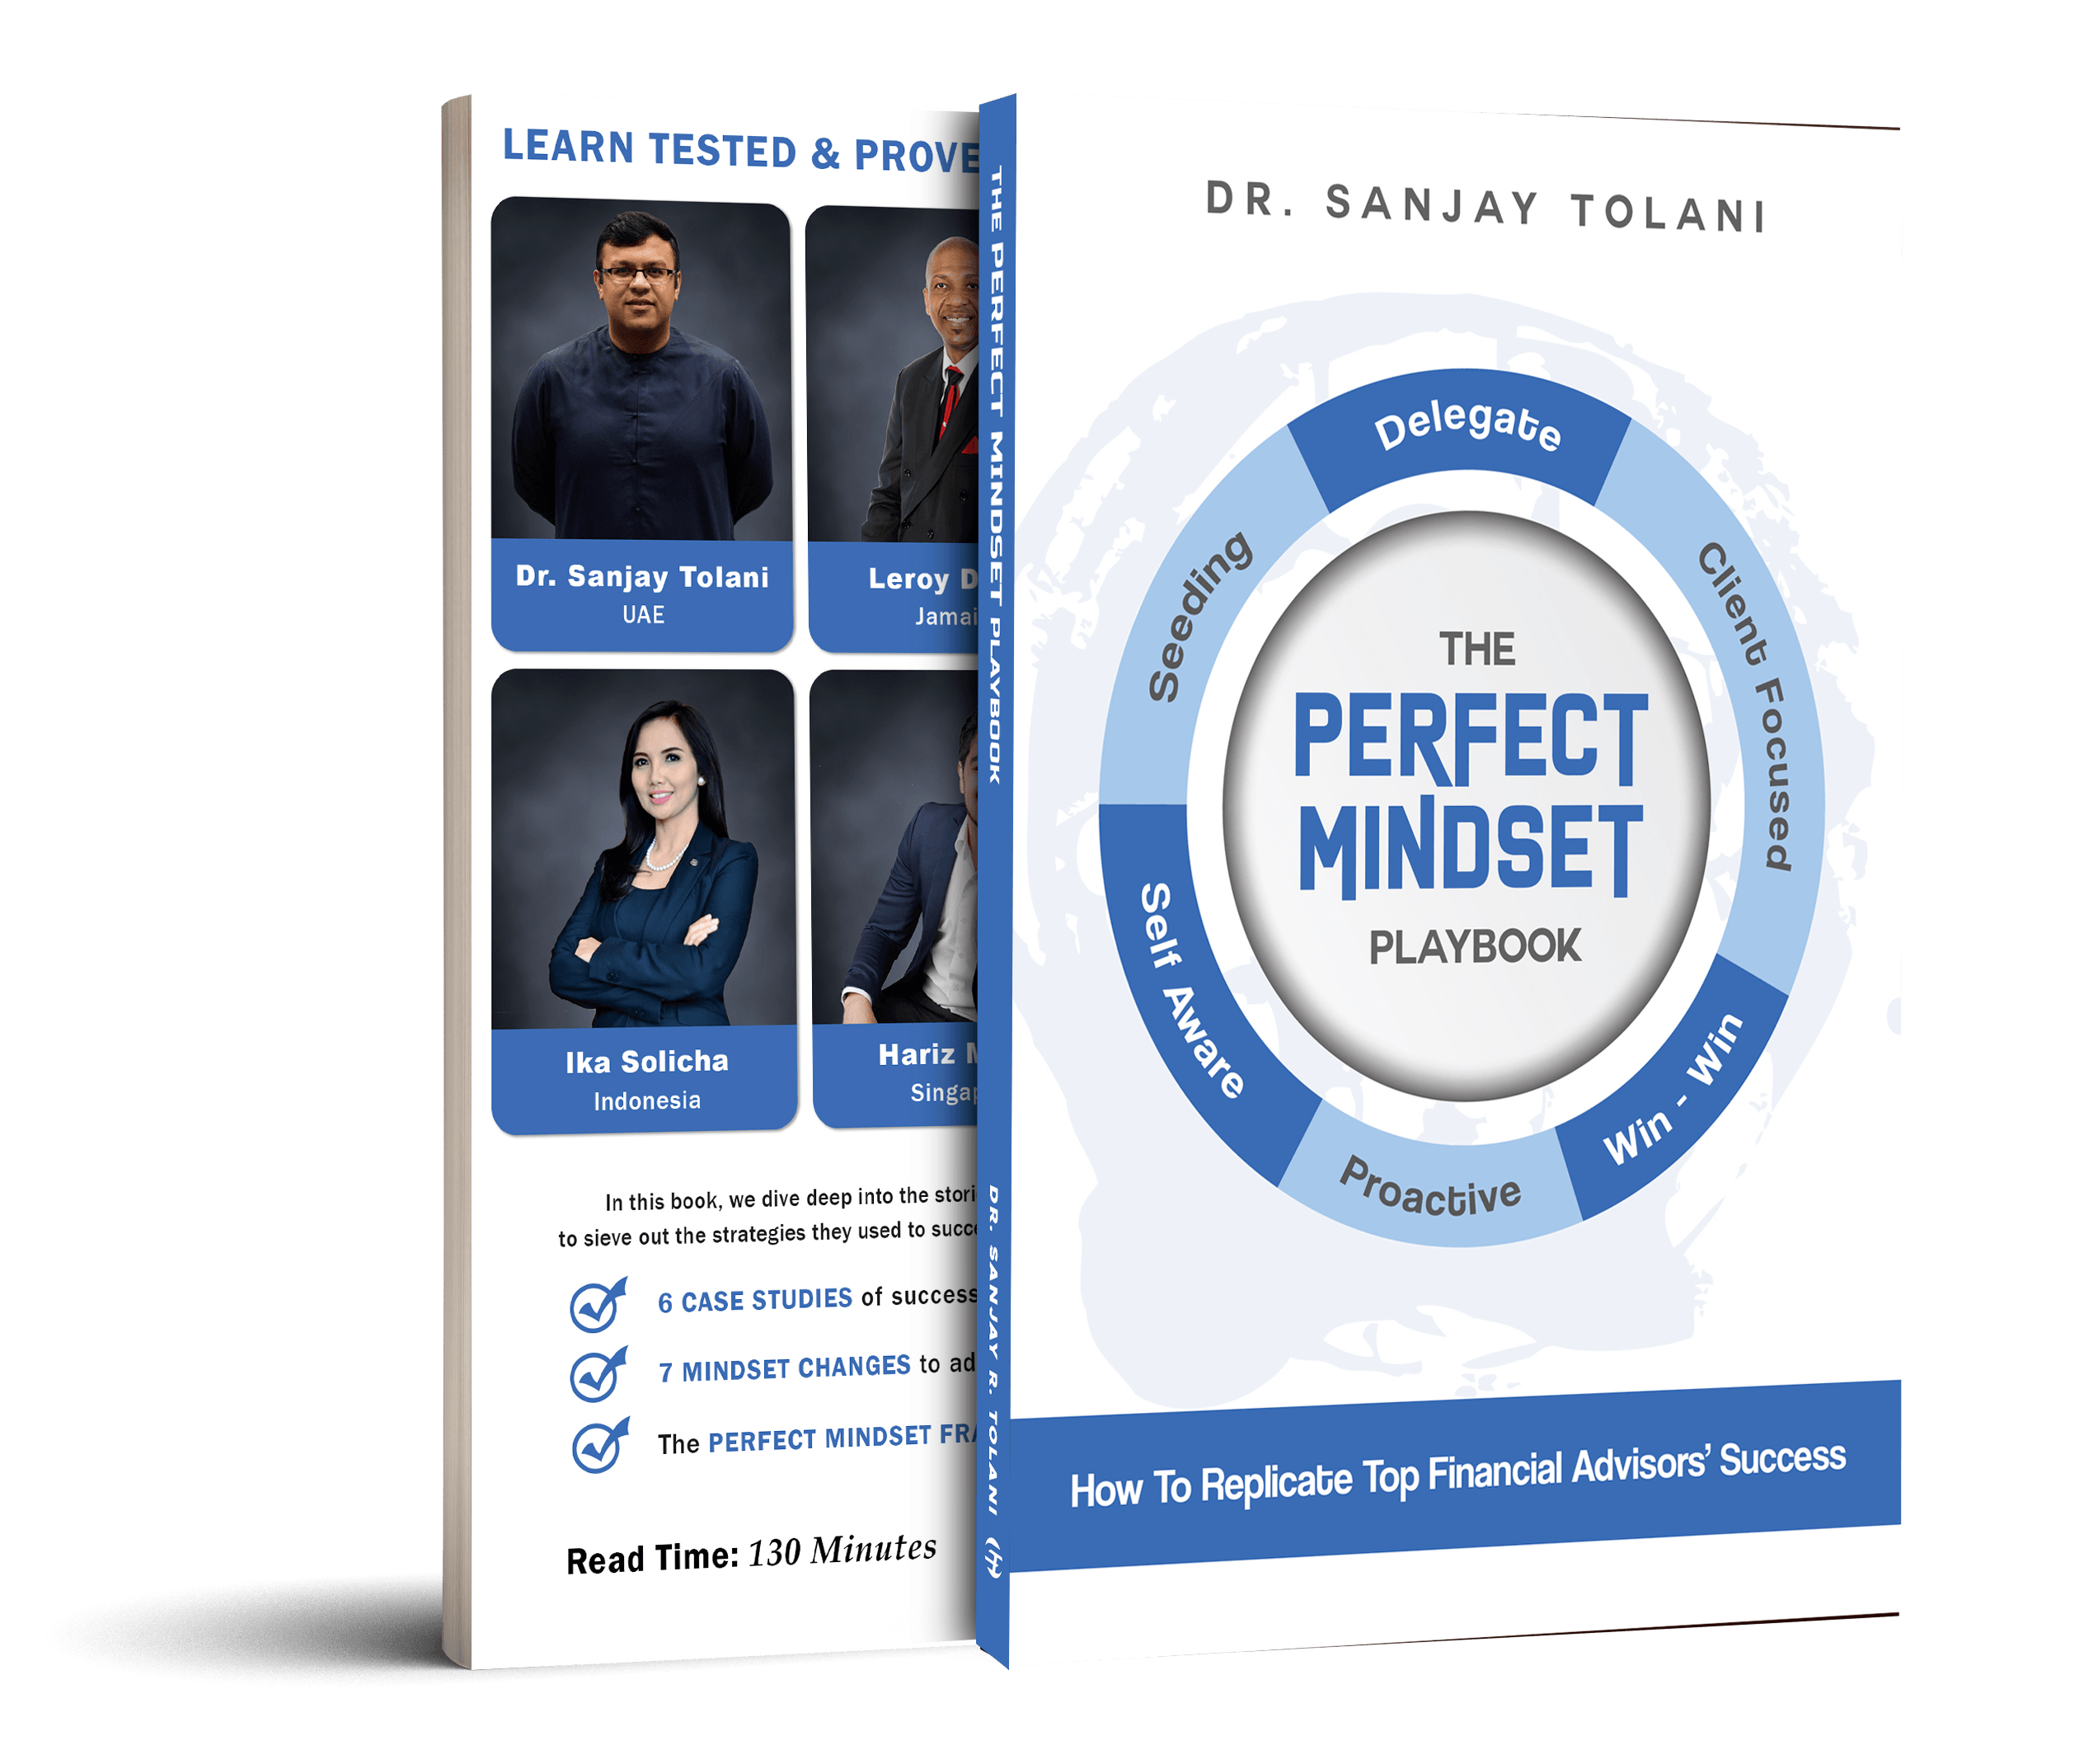 The BLUE Perfect Mindset Playbook